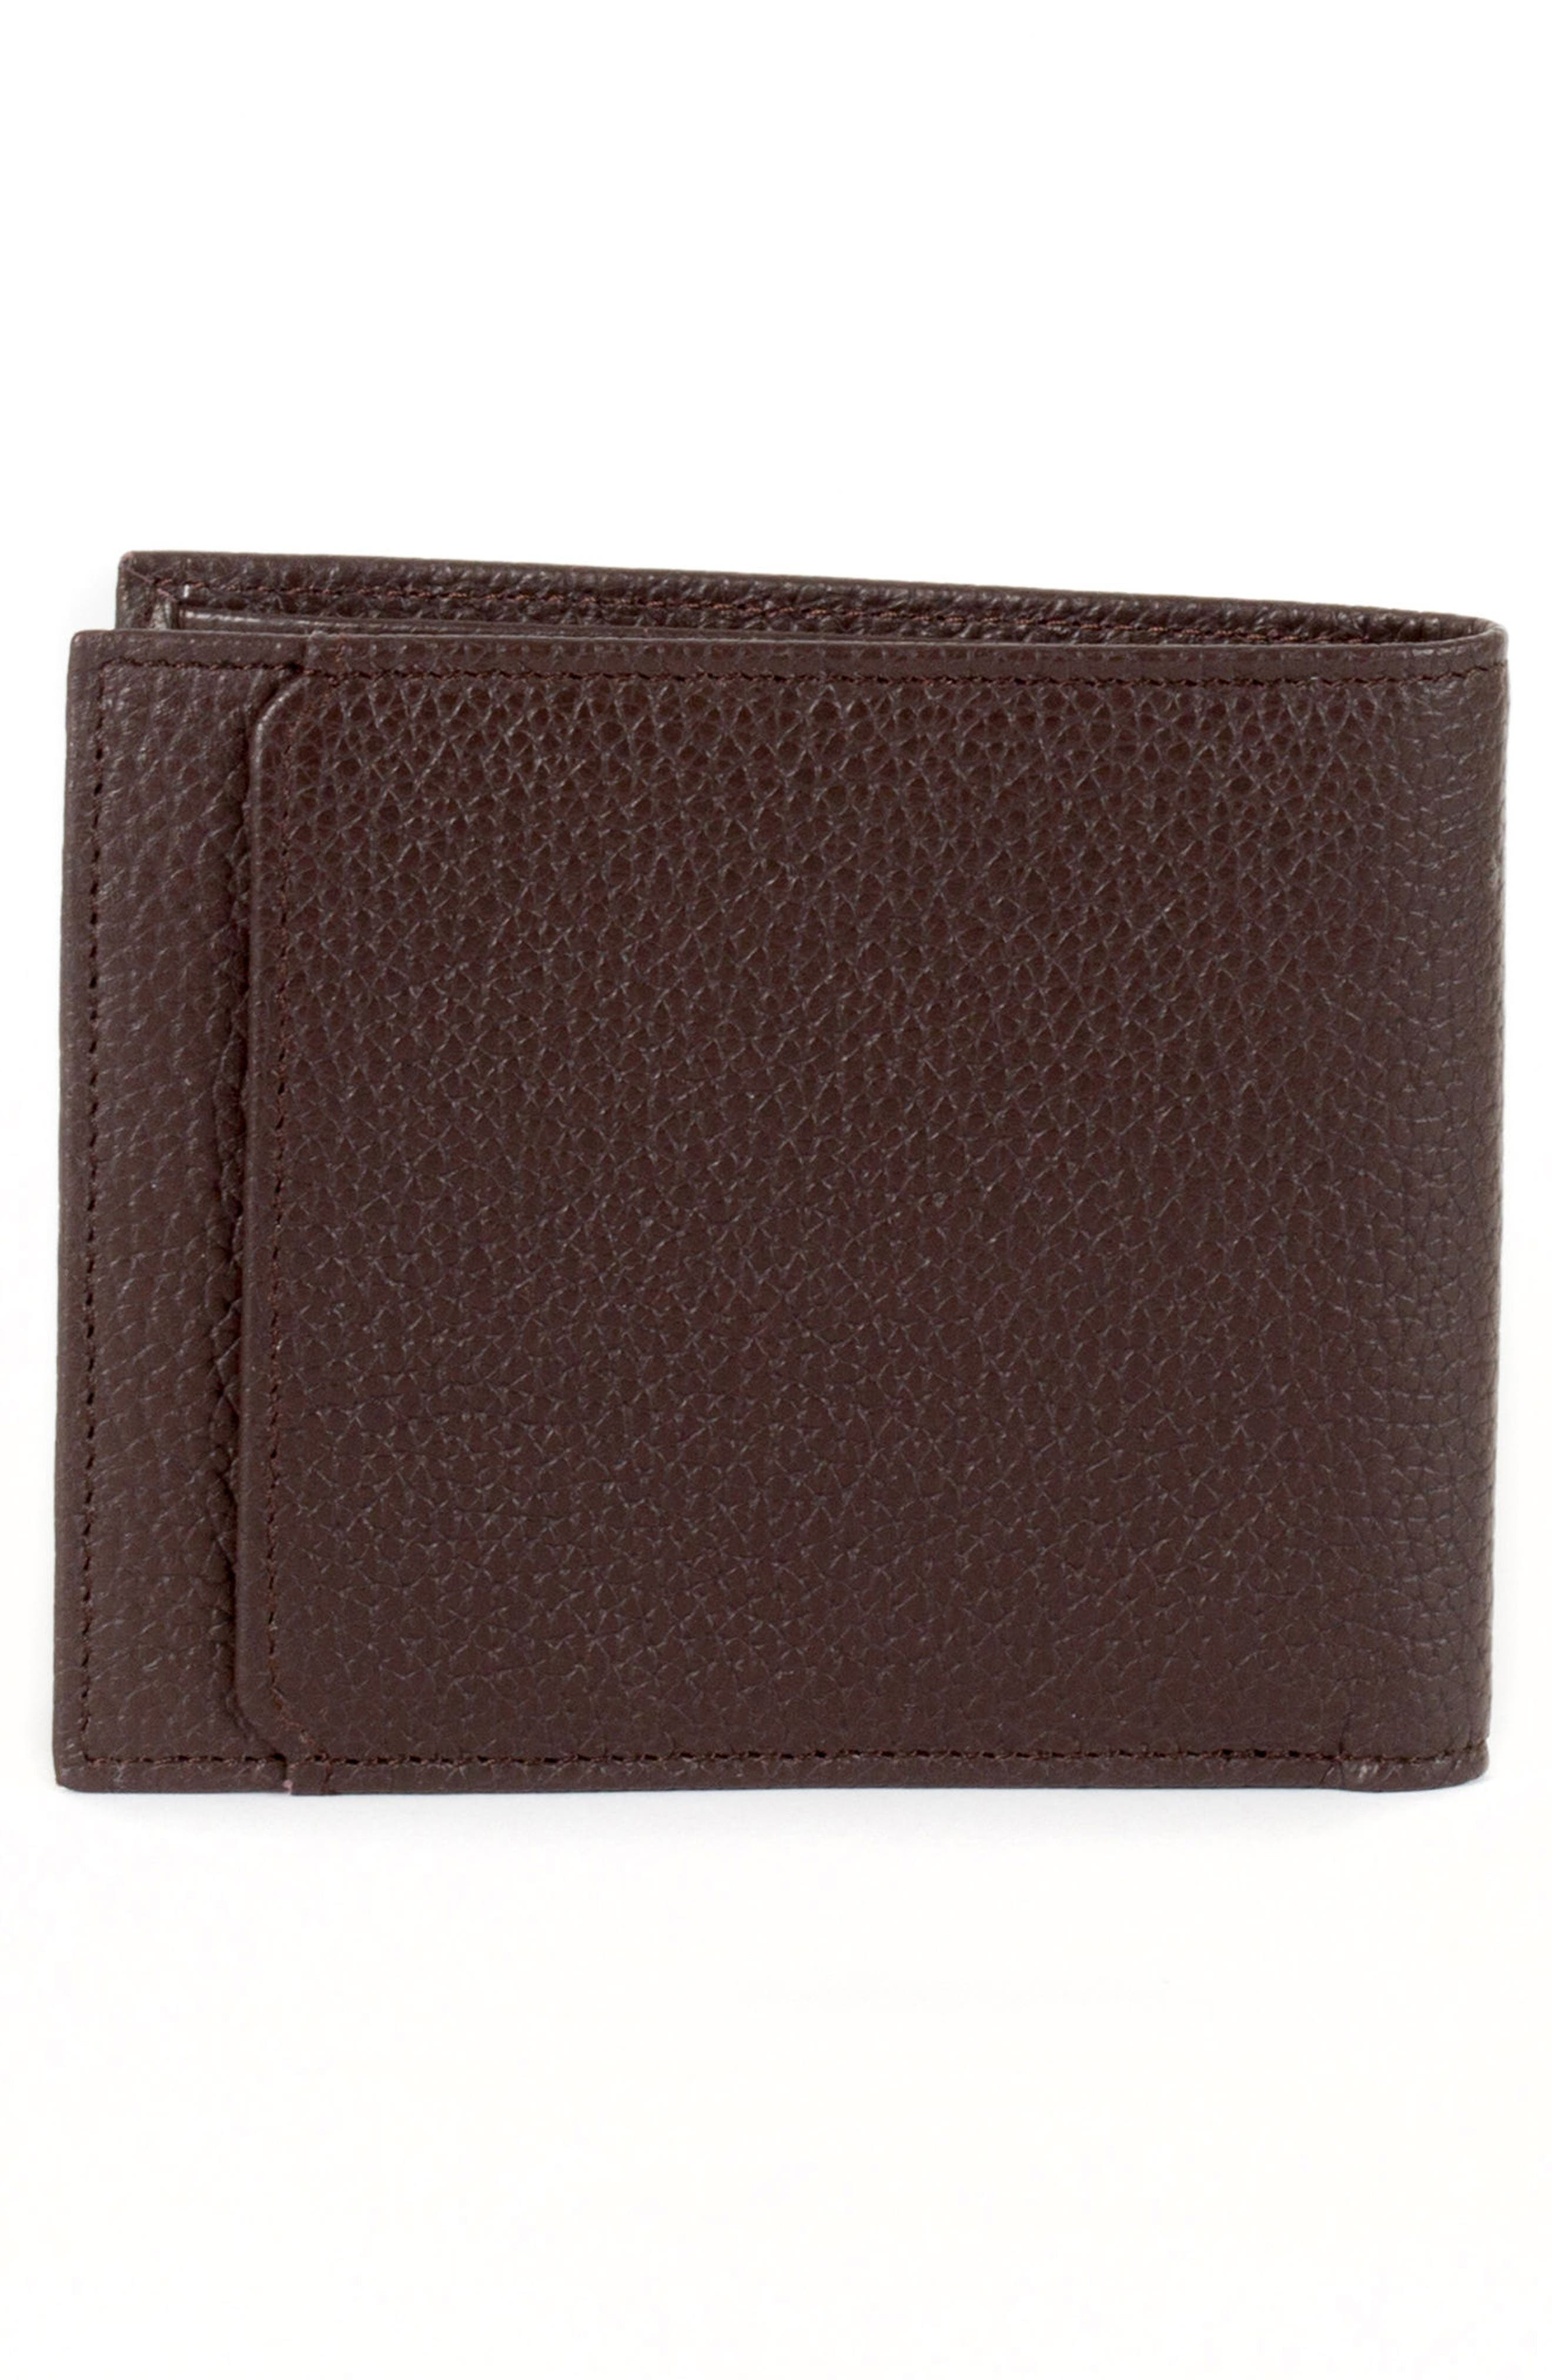 Garth Leather Bifold Wallet,                             Alternate thumbnail 6, color,